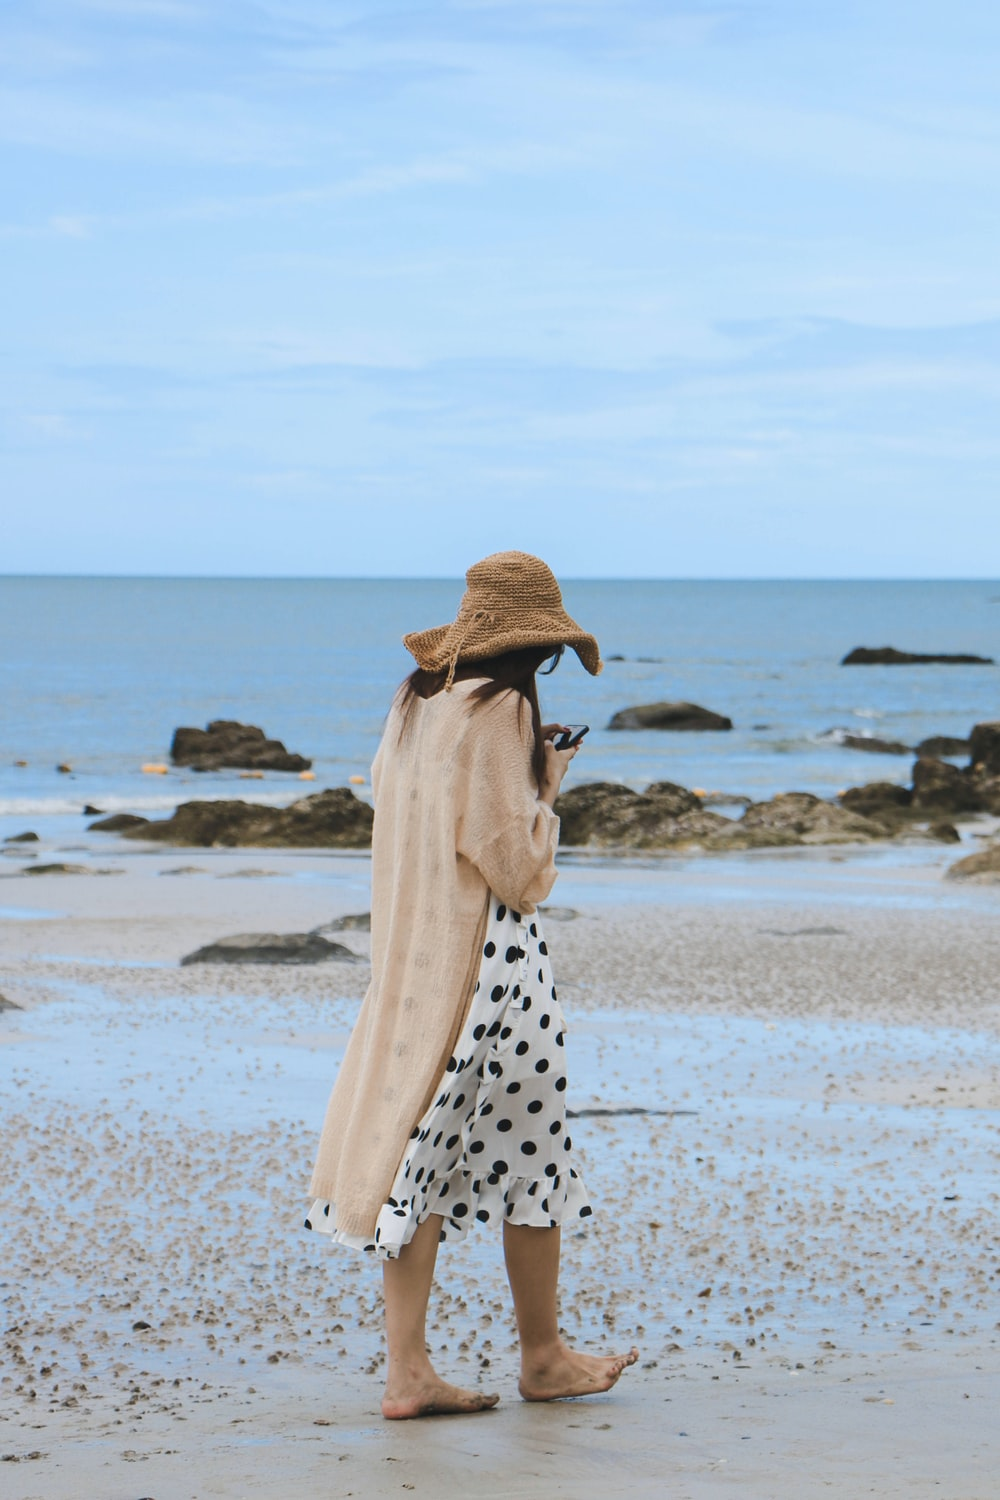 woman wearing sun hat walking along seashore